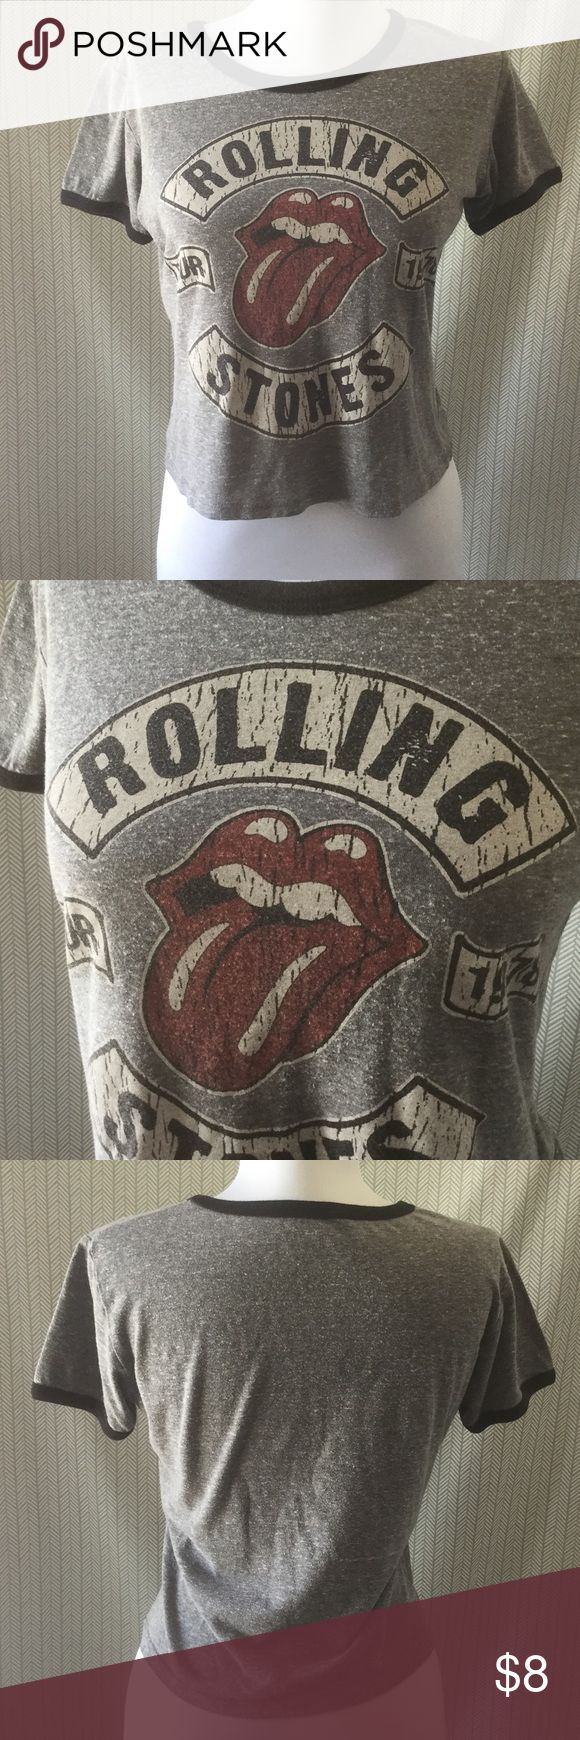 Rolling Stones Rock Concert Style Tee Size M Heather gray distressed look, branded merchandise by Rolling Stones **Not an actual concert tee**.  Perfectly worn in! Rolling Stones Tops Crop Tops